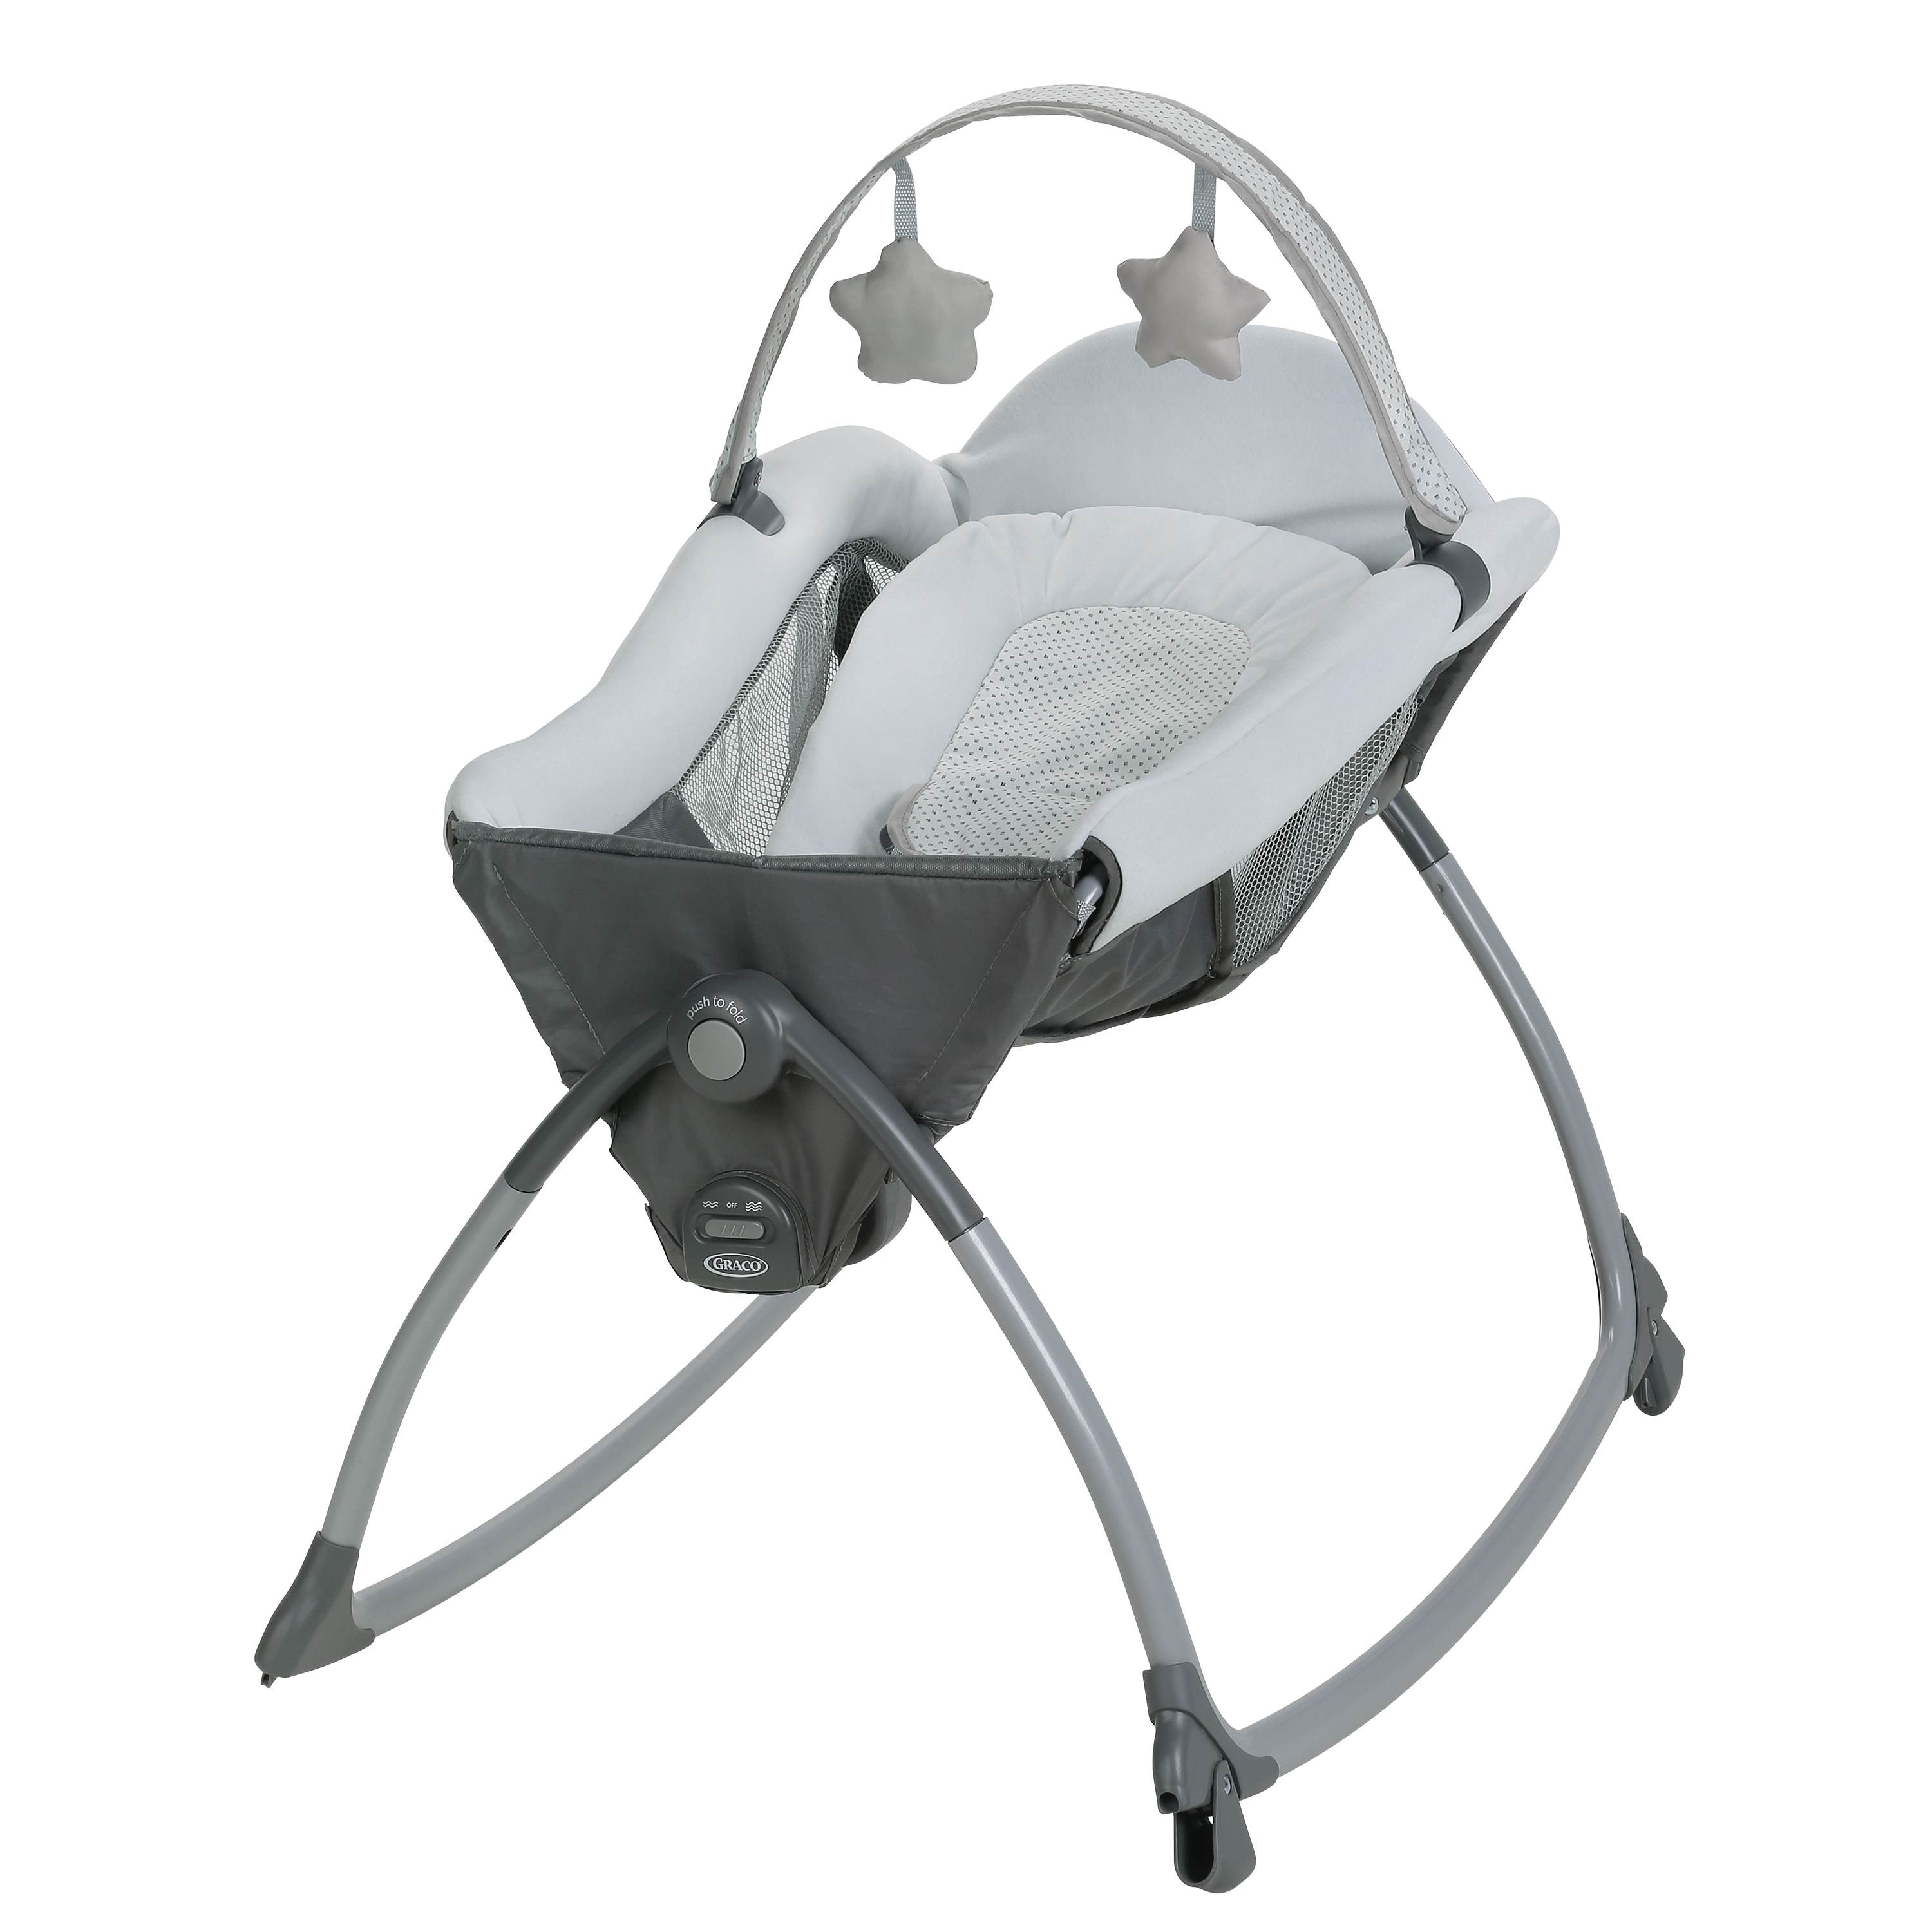 Graco Little Lounger Swing, Mullaly by Graco